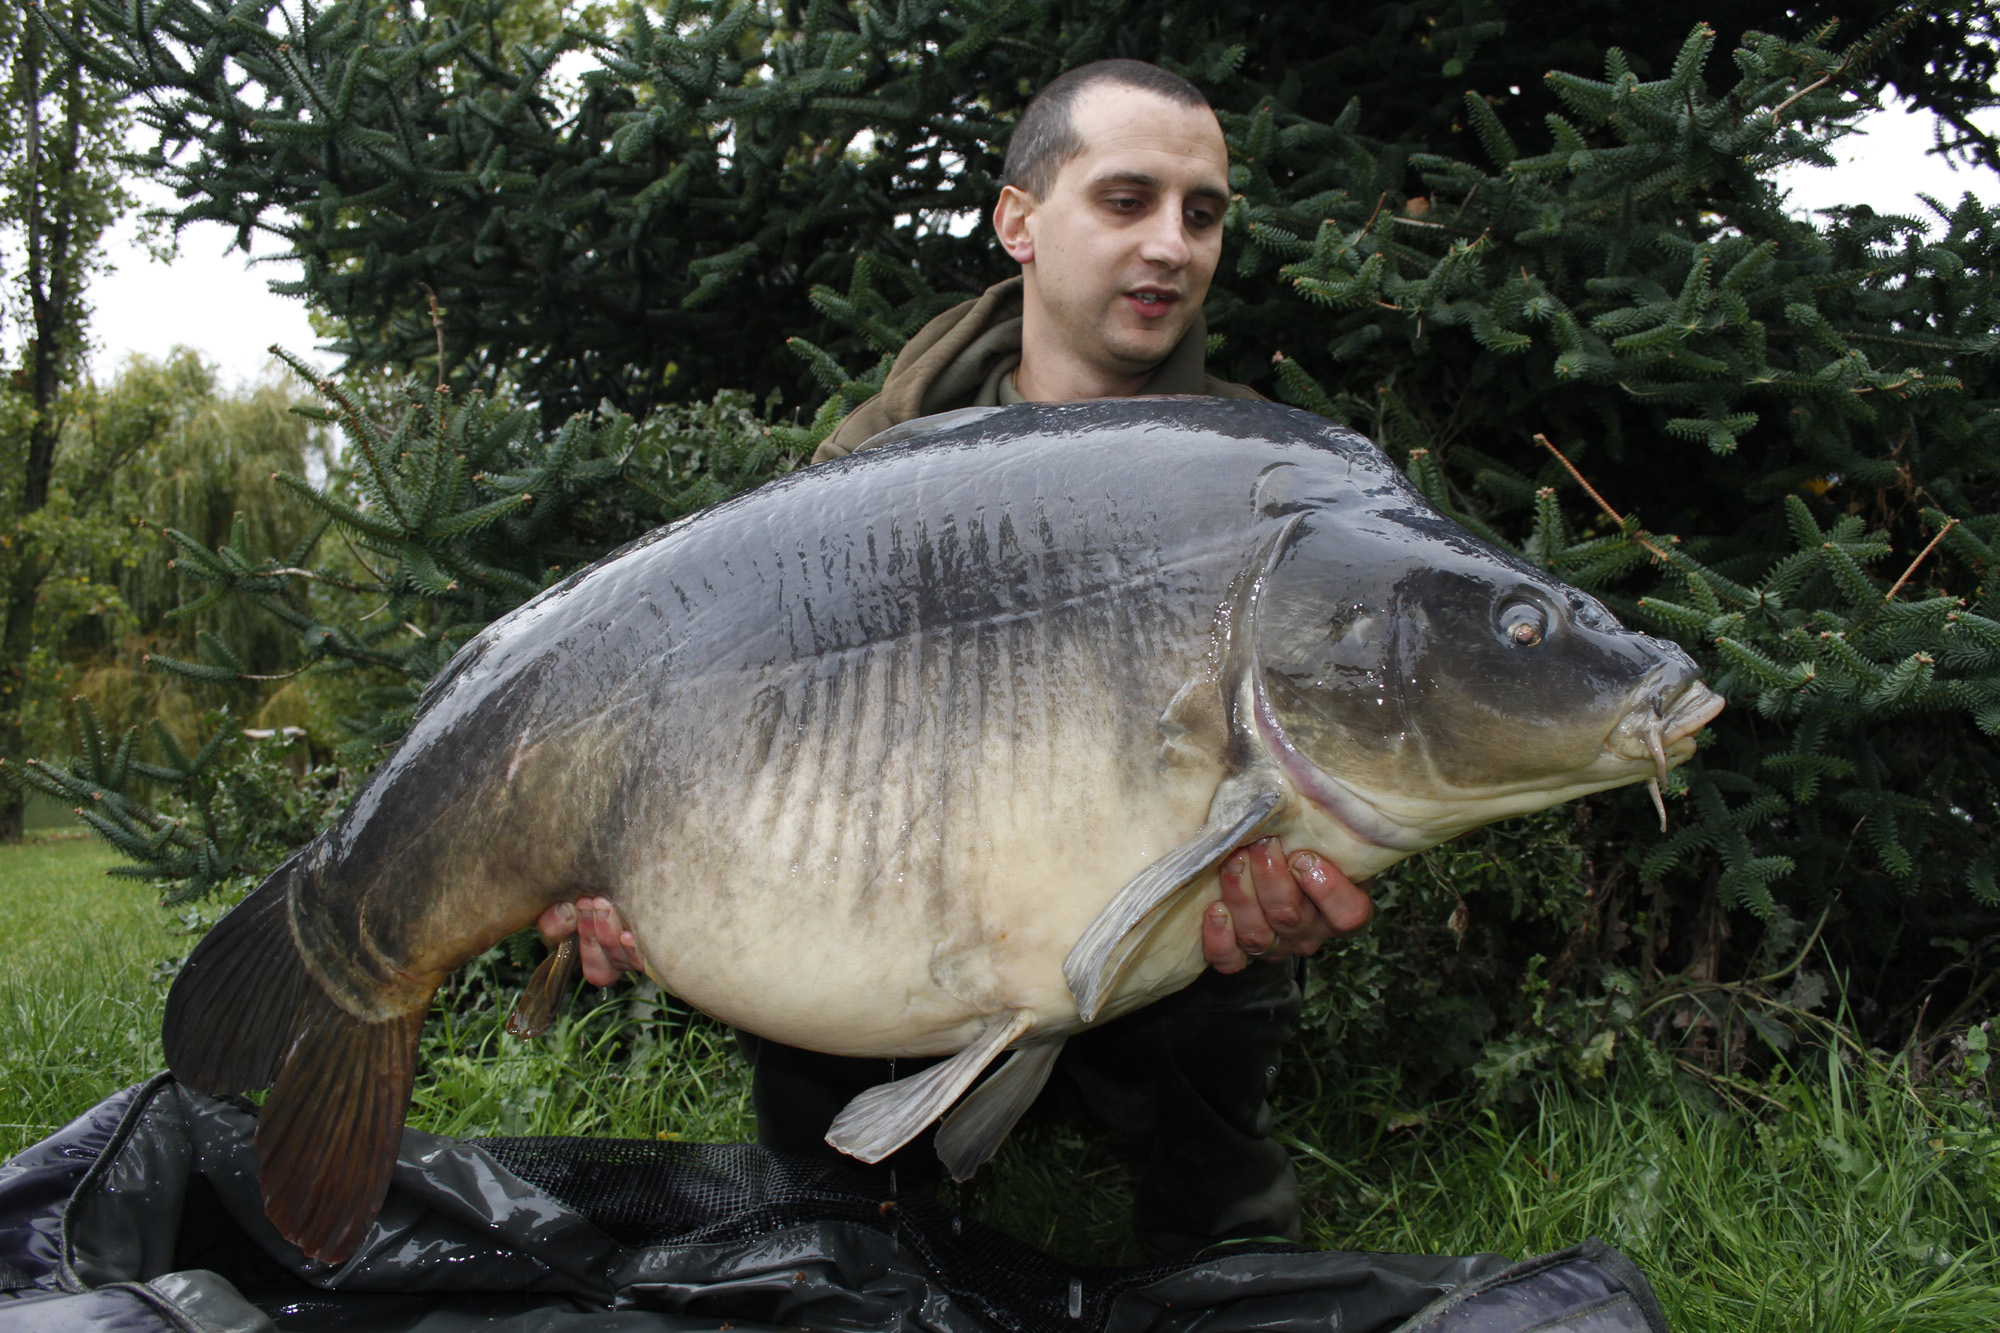 http://www.starbaits.com/fichiers/images/team/gallery/COLLET_Jerome/6 Jérôme Collet.JPG